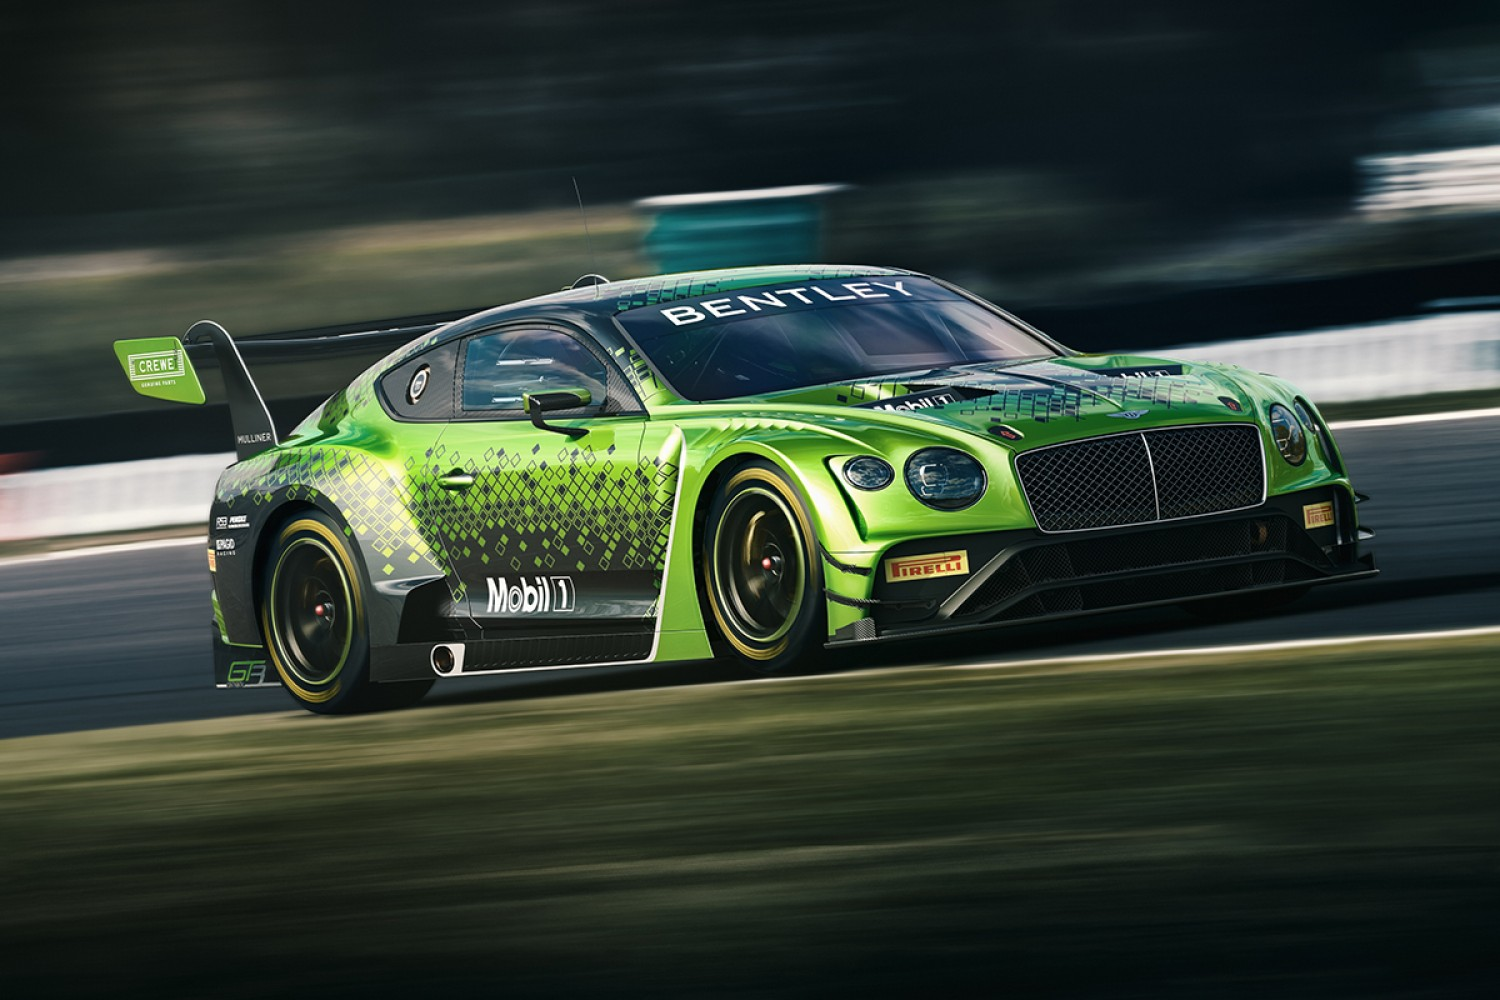 Bentley Team M-Sport return for fifth consecutive Intercontinental GT Challenge Powered by Pirelli campaign